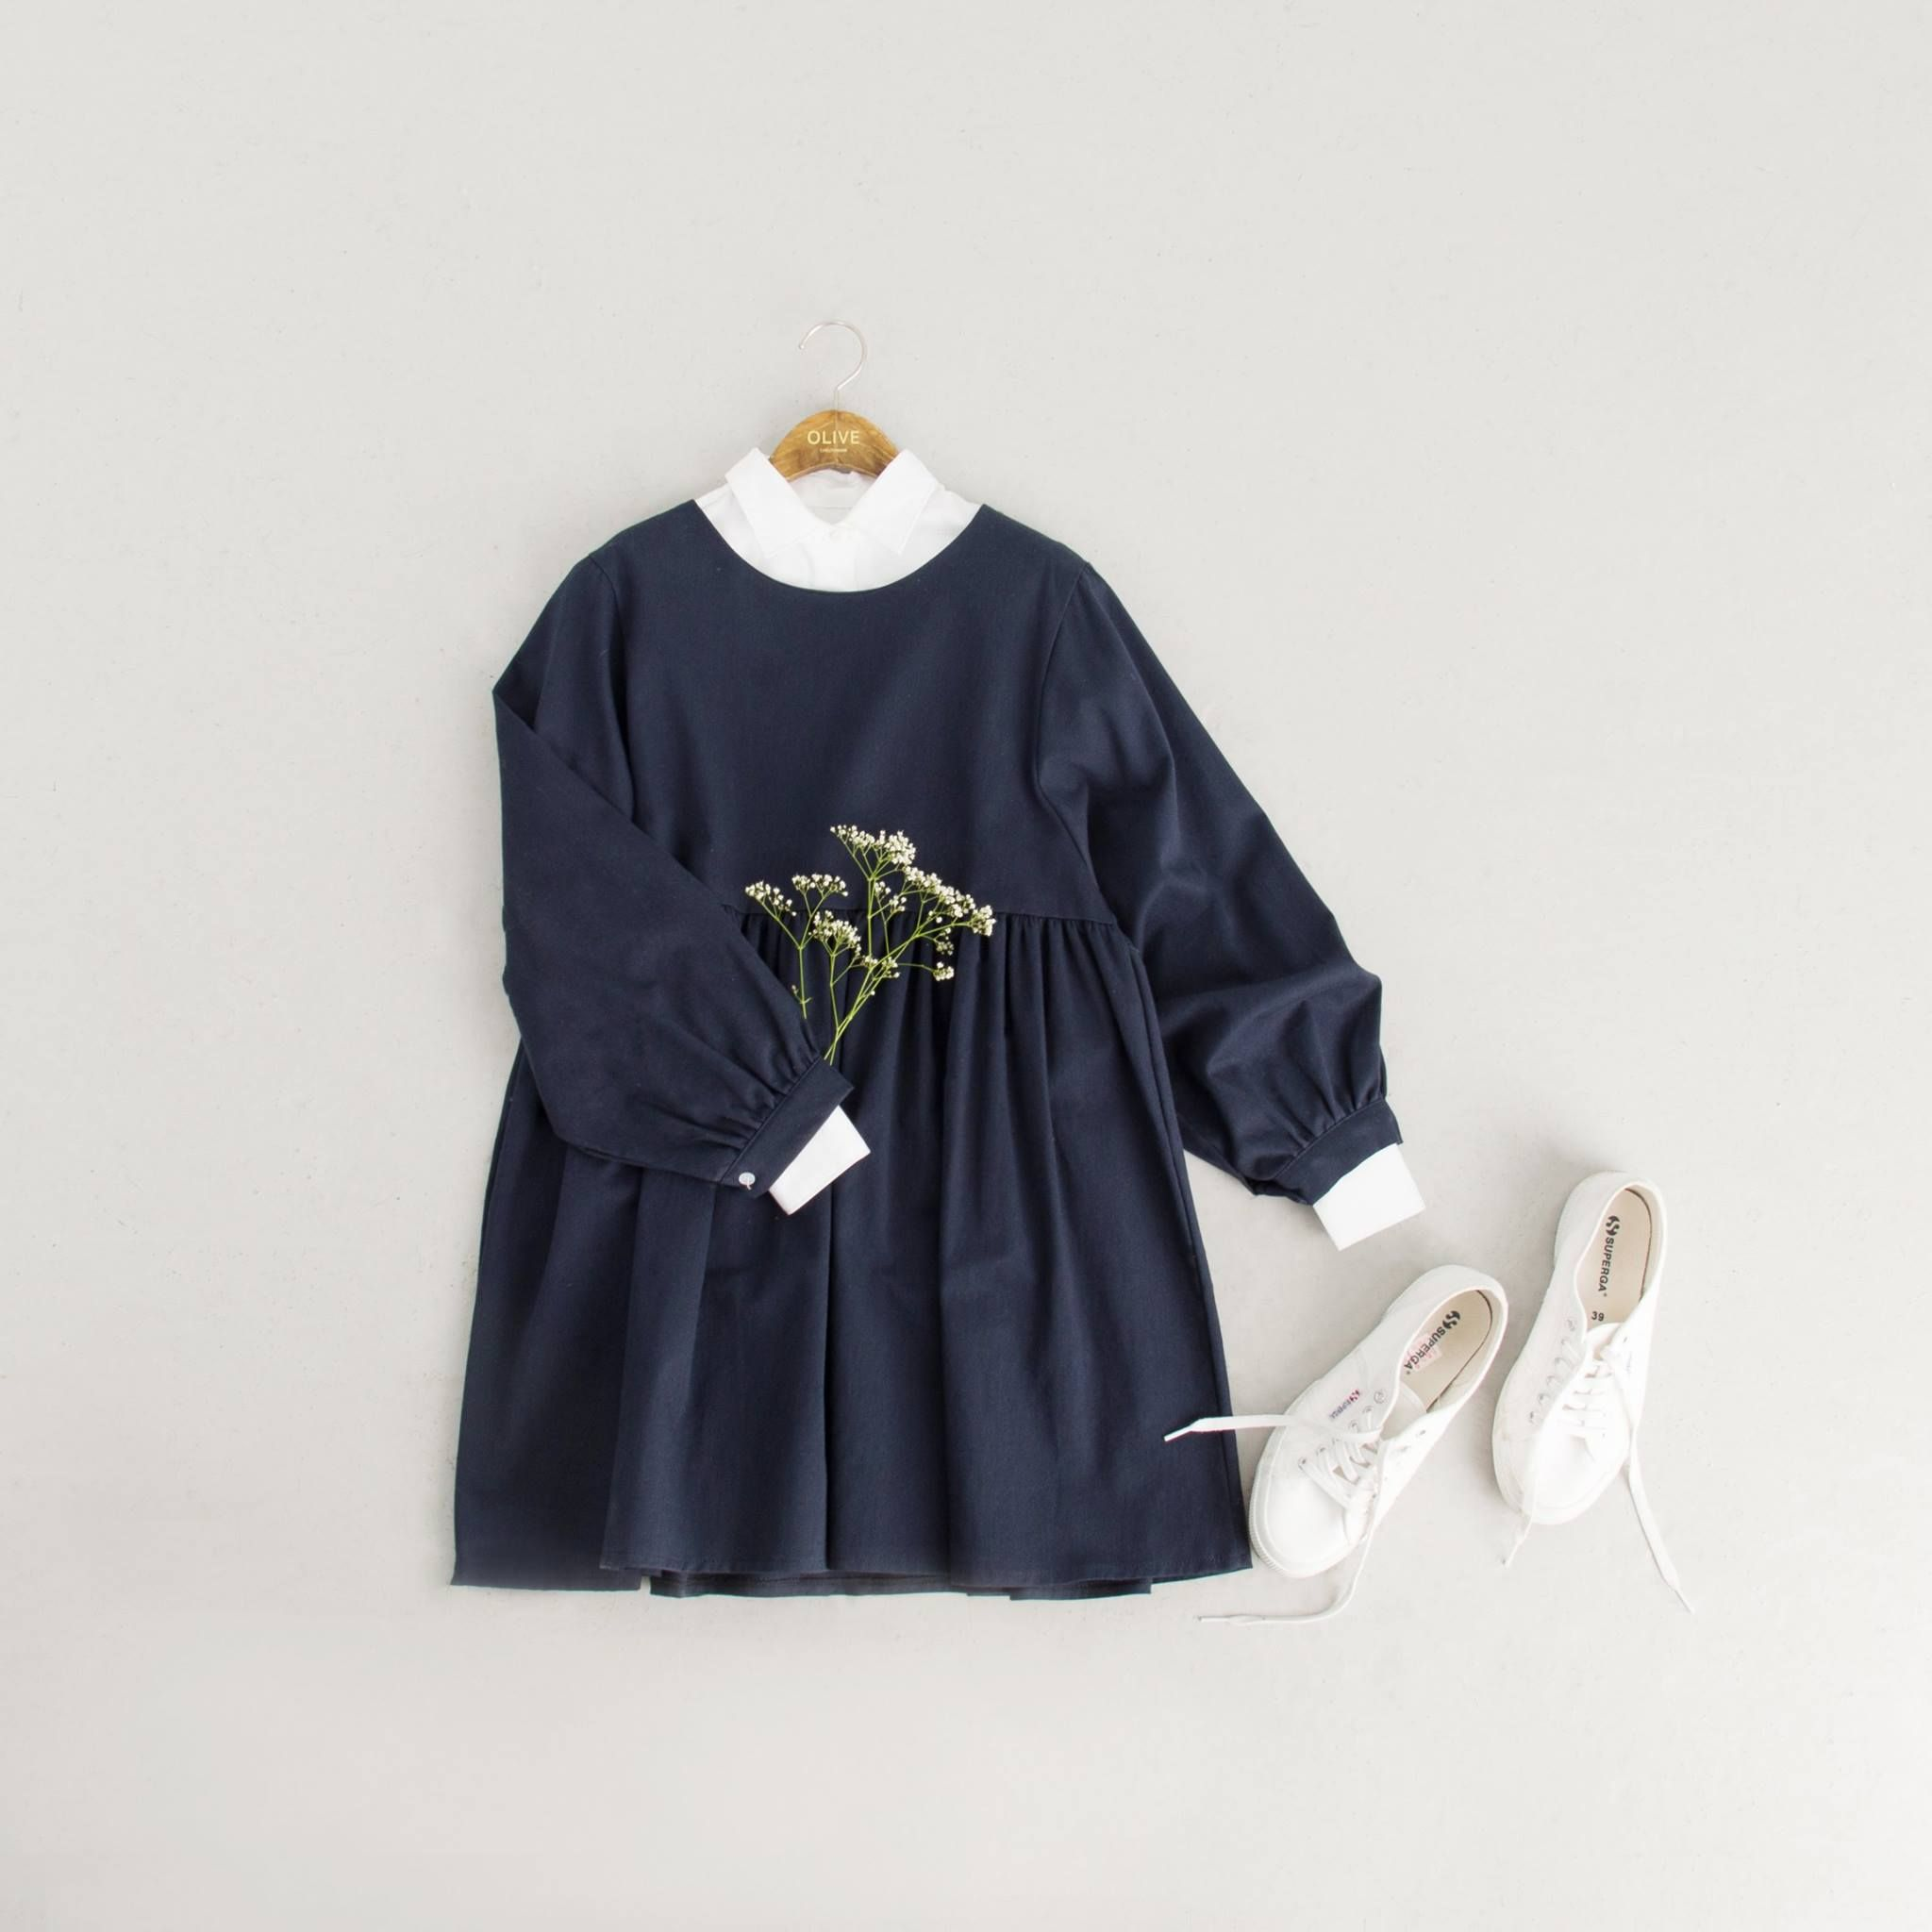 Simple structured shirt ivory and simple babydoll dress navy